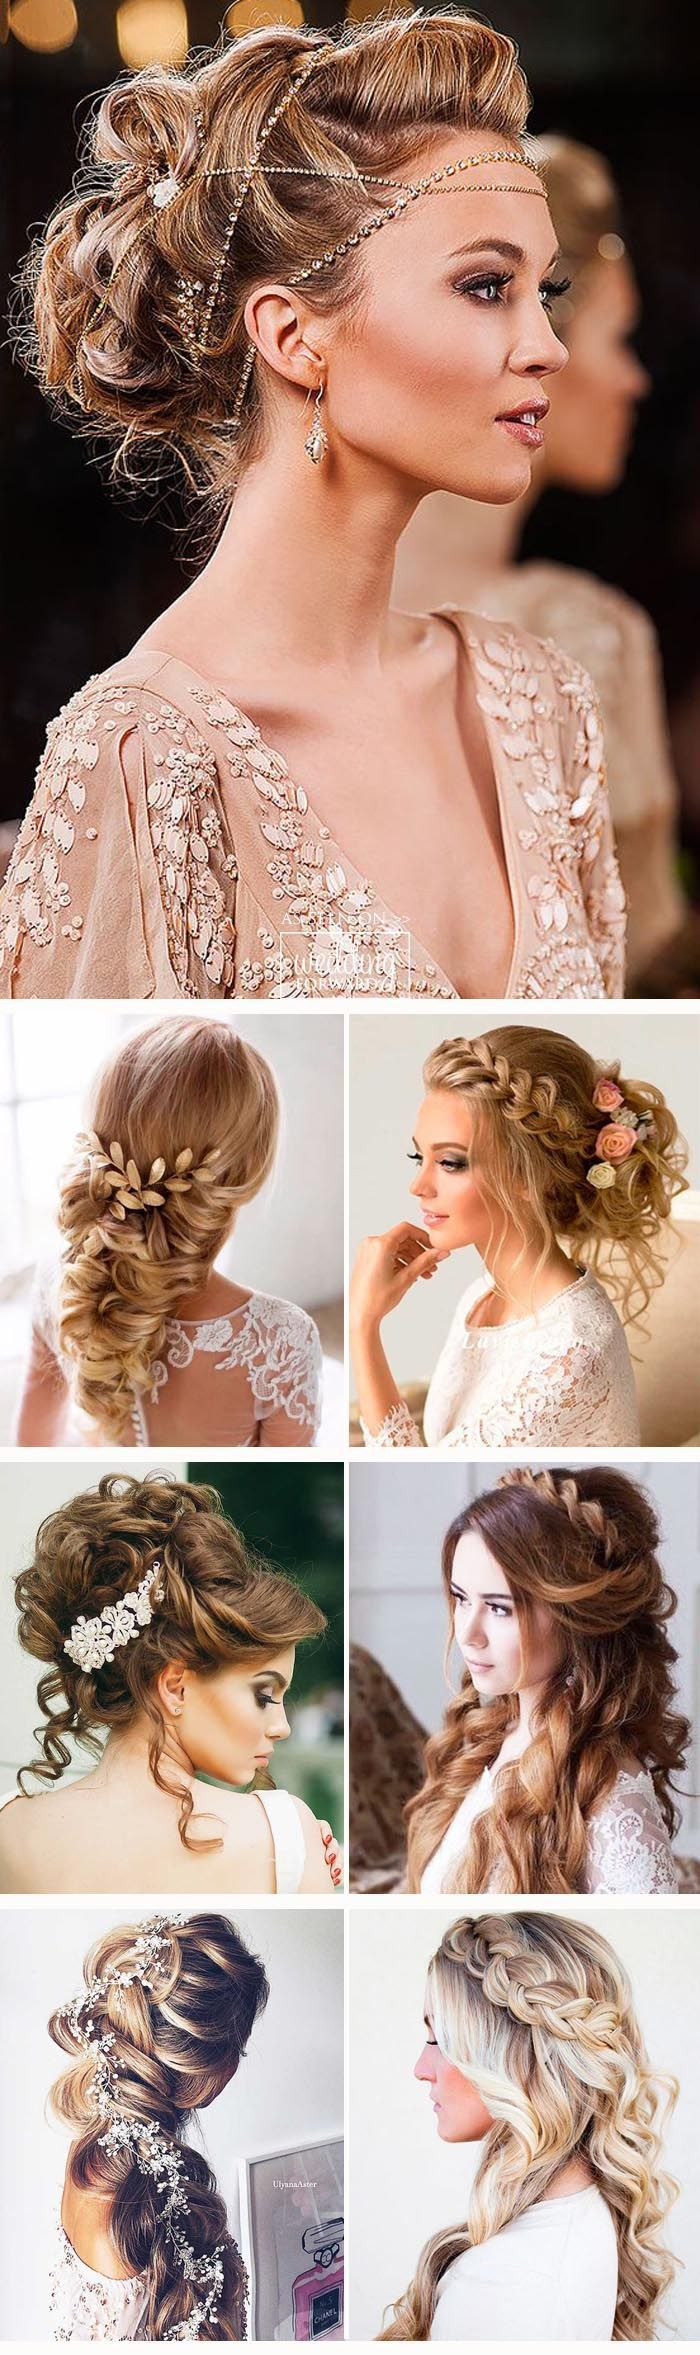 24 Greek Wedding Hairstyles For The Divine Brides ❤️ Greek wedding hairstyles are ideal for warm-weather nuptials. See more: http://www.weddingforward.com/greek-wedding-hairstyles/ #weddings #hairstyles